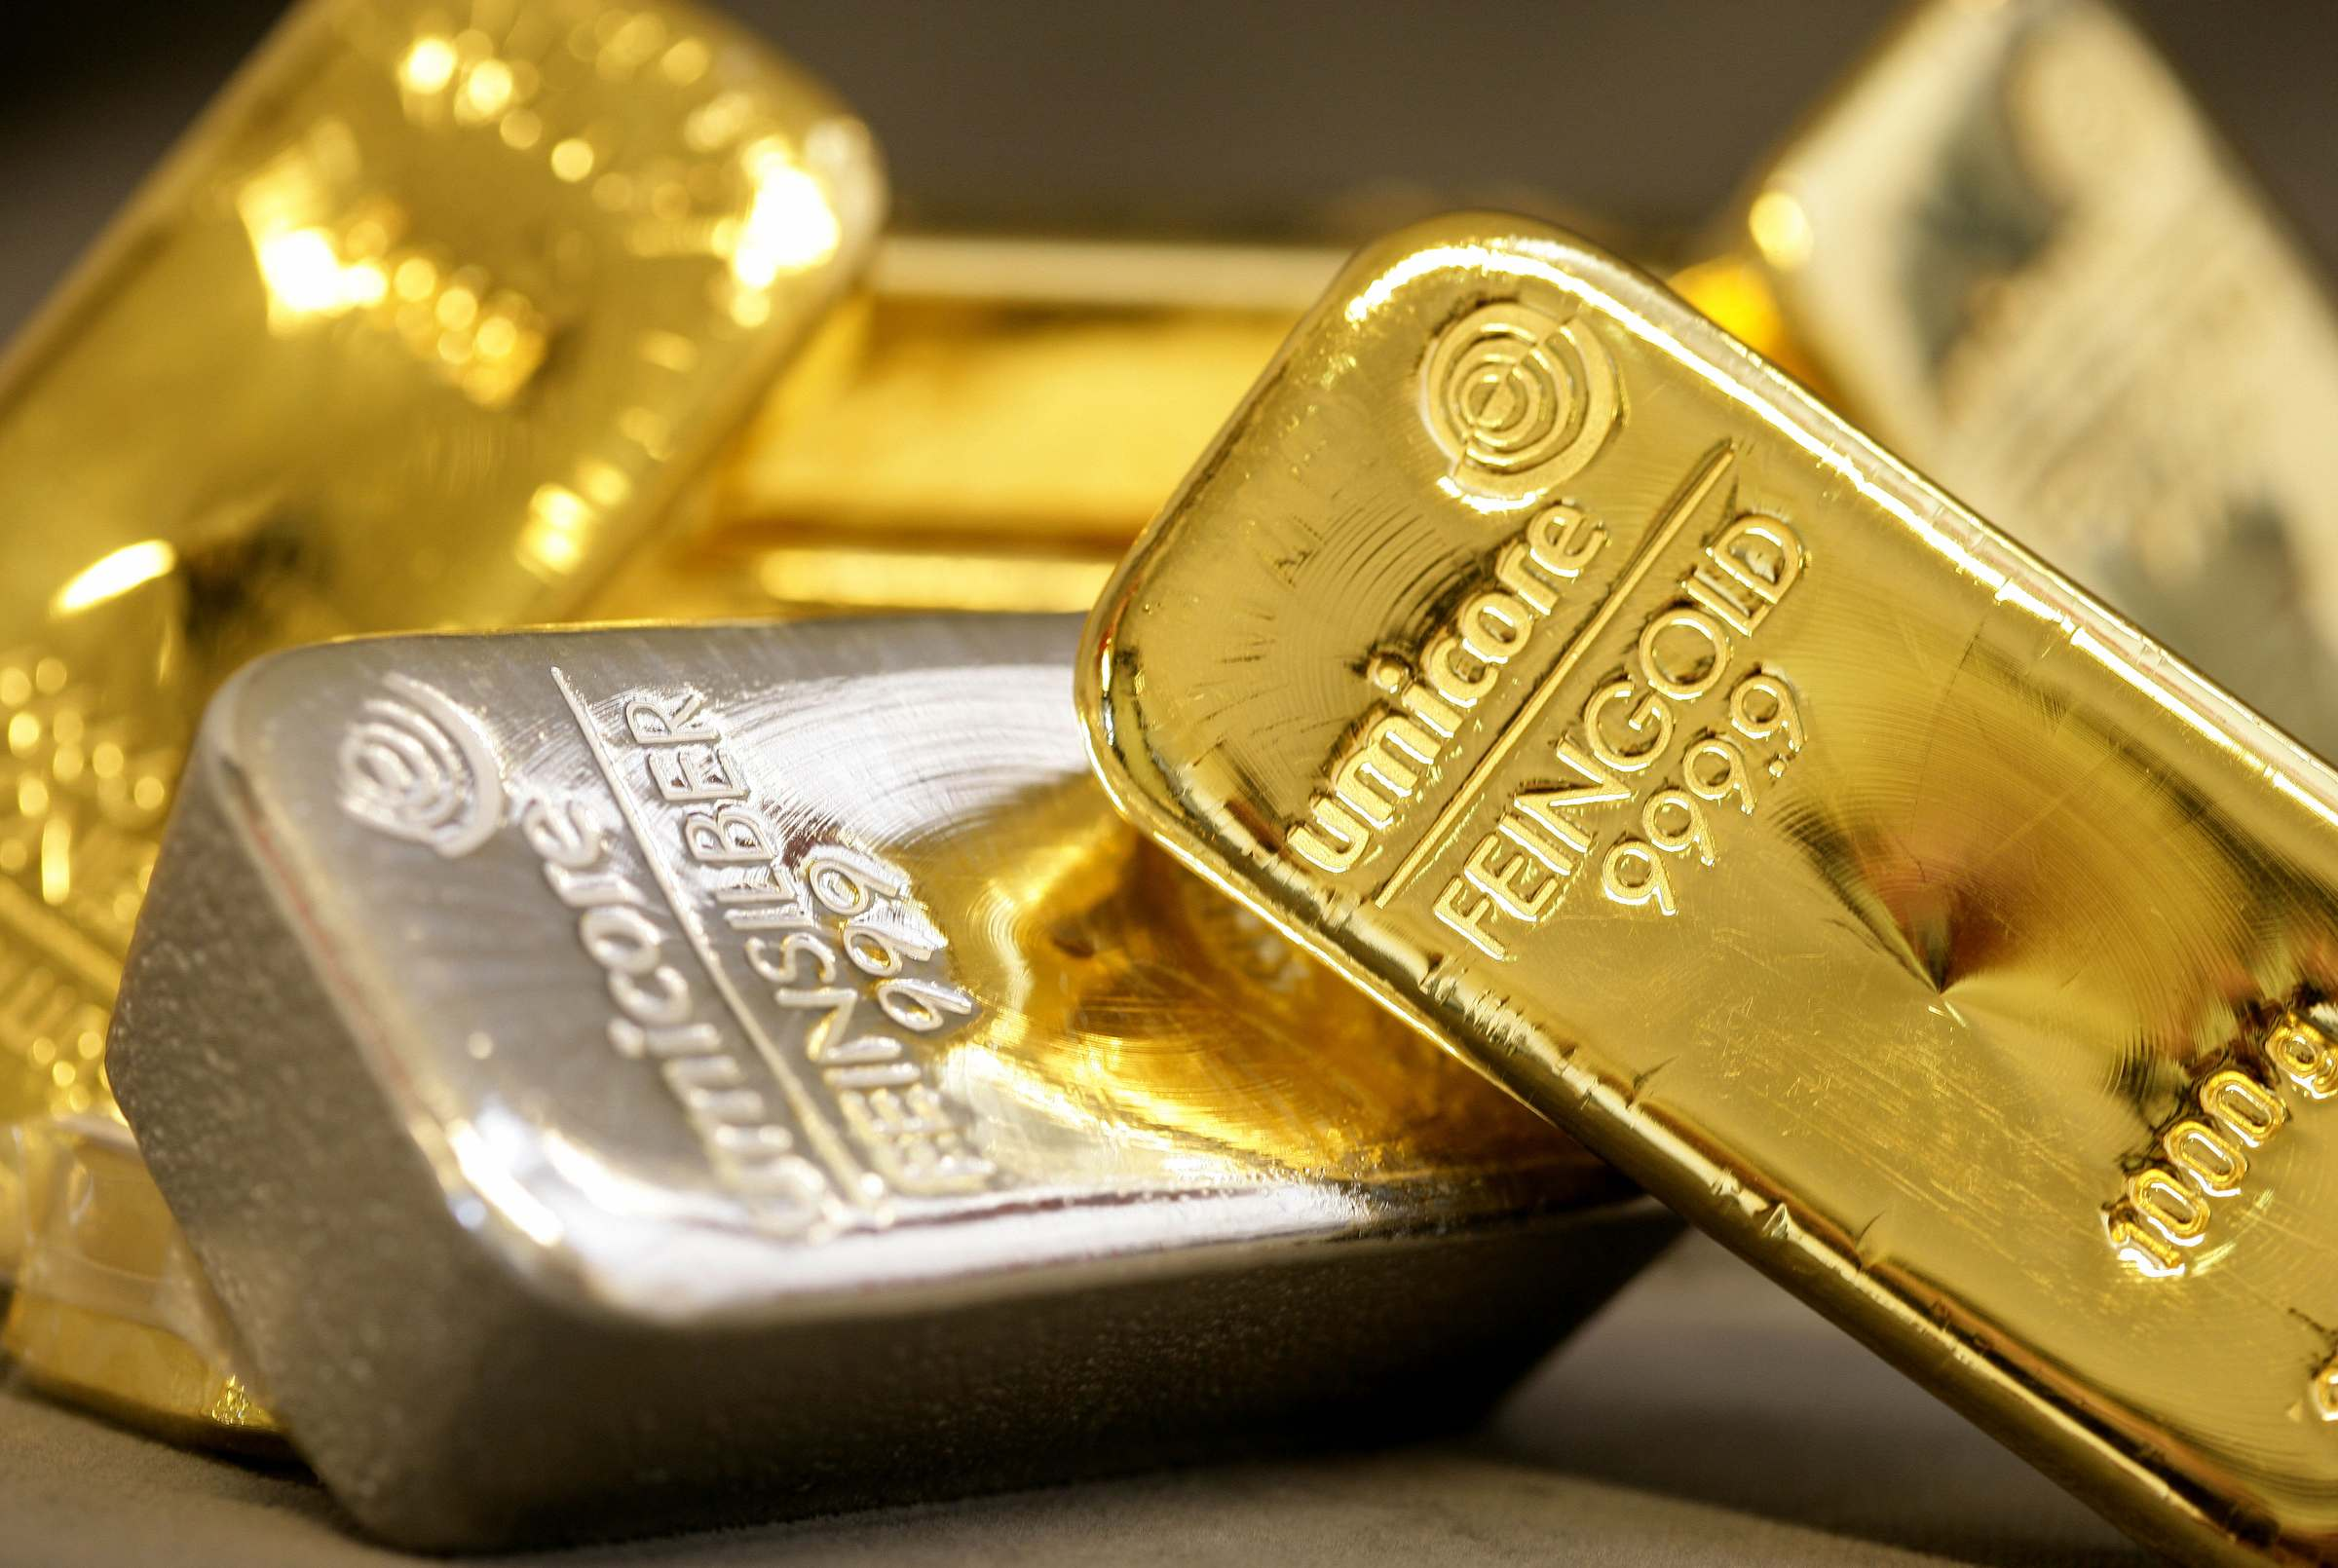 buy-gold-and-silver-safely